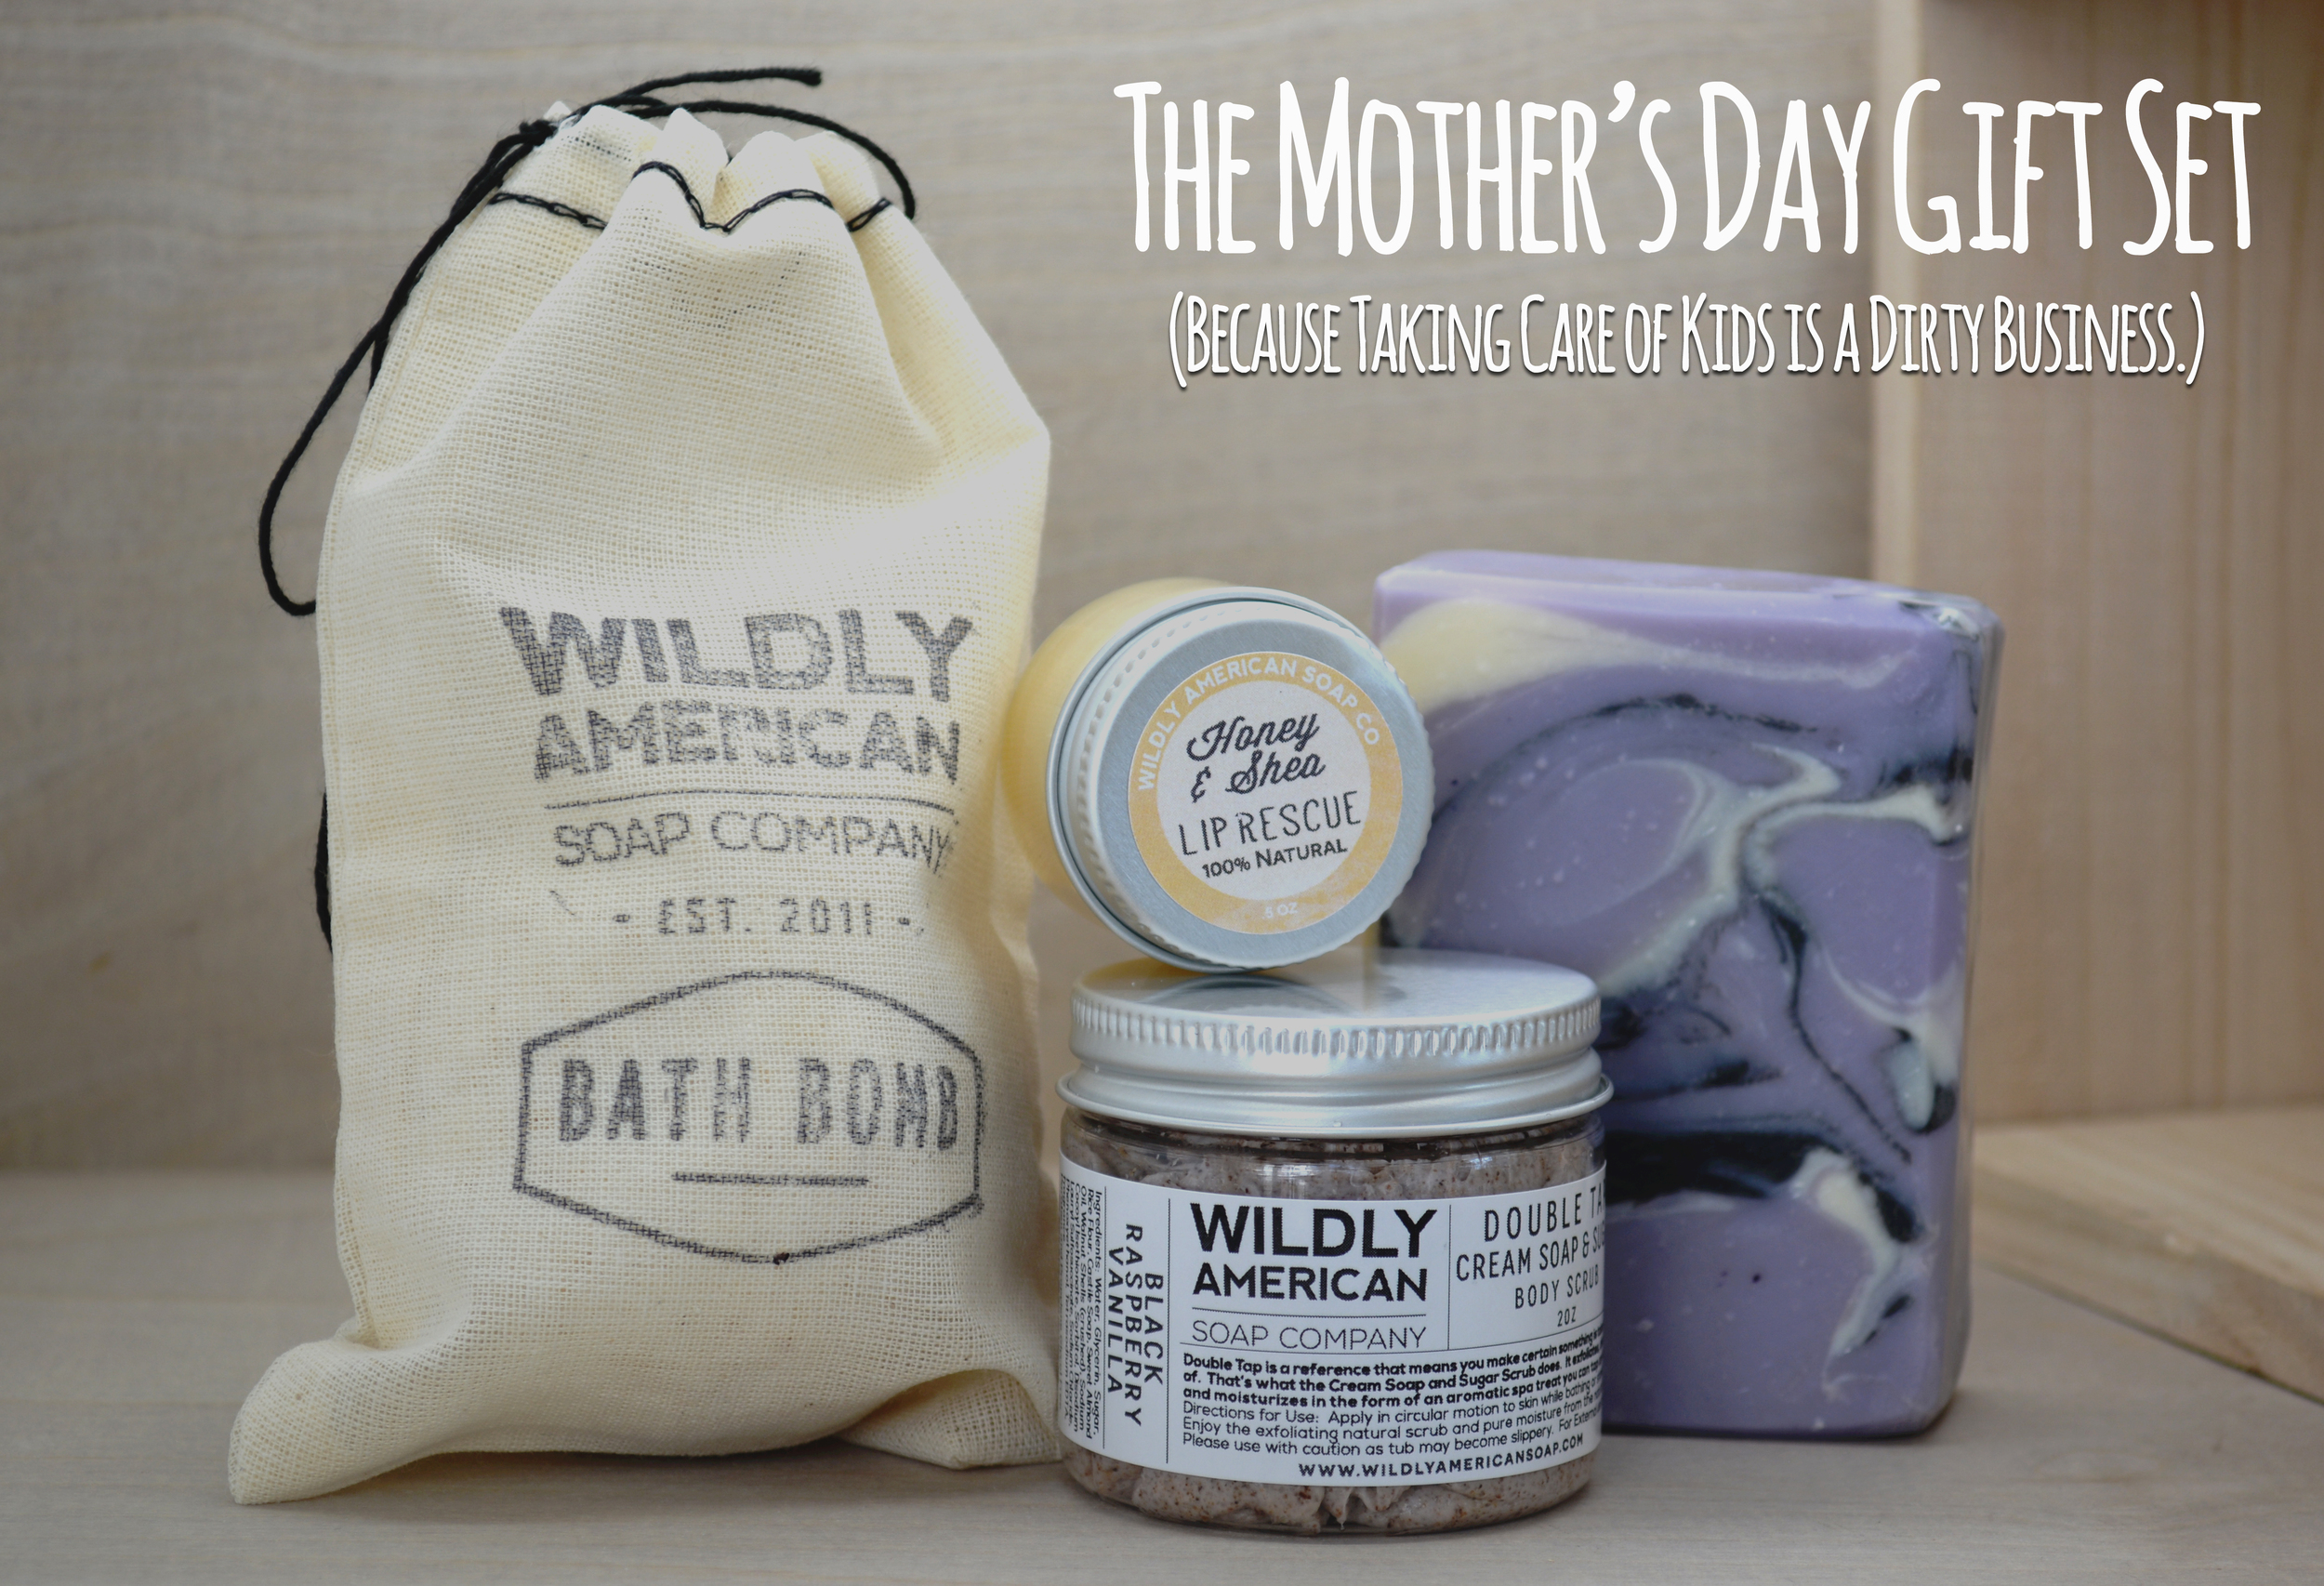 Wildly American Mother's Day gift set